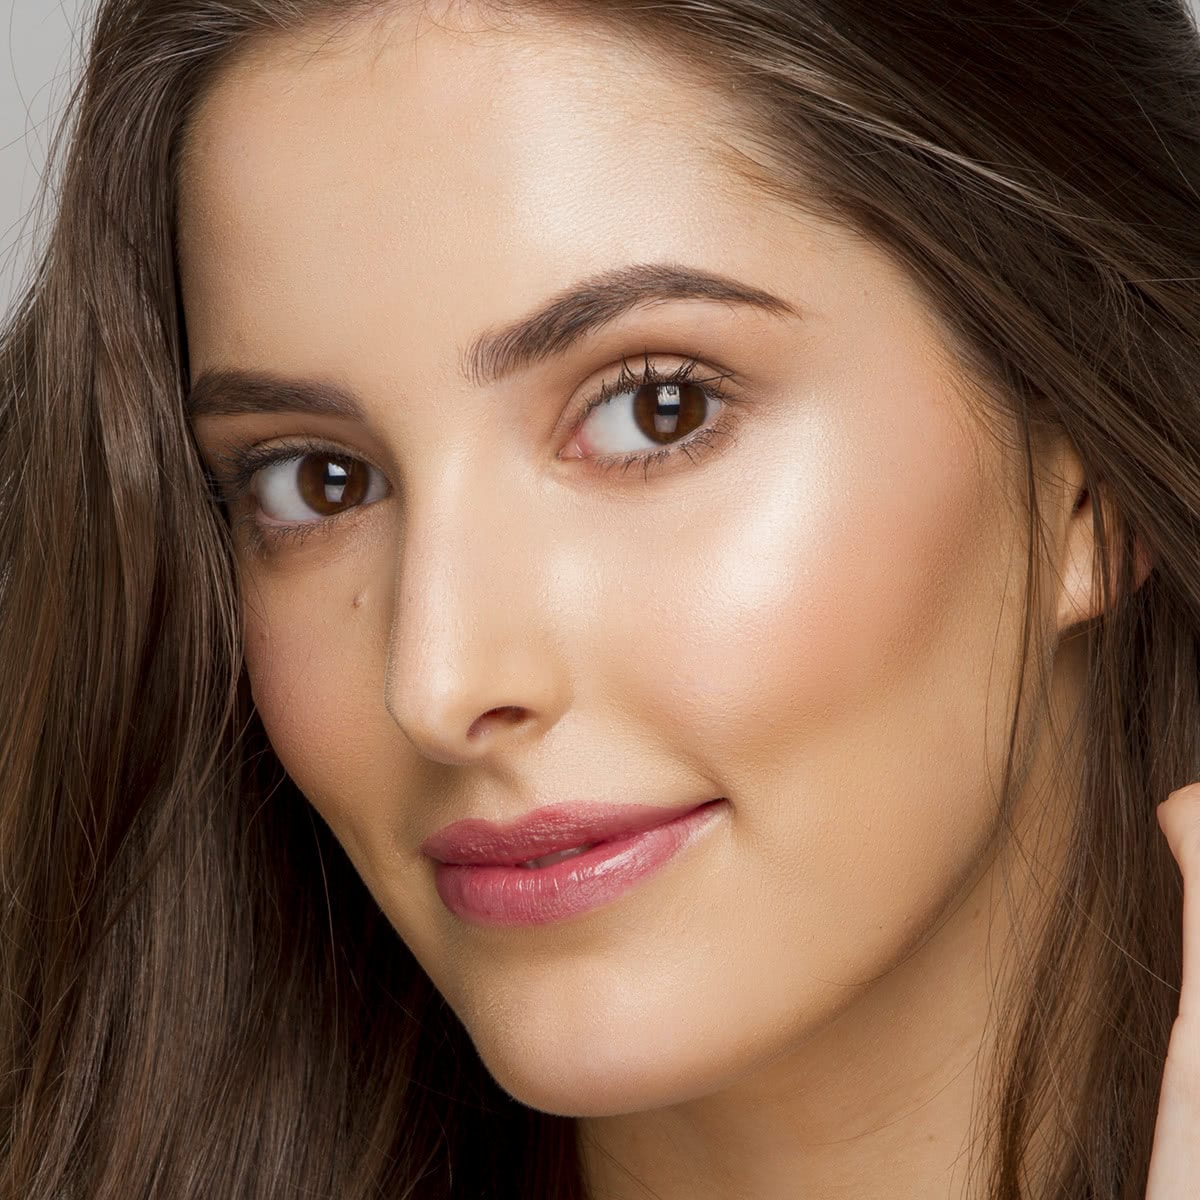 Get The Look: Flawless Skin With BECCA